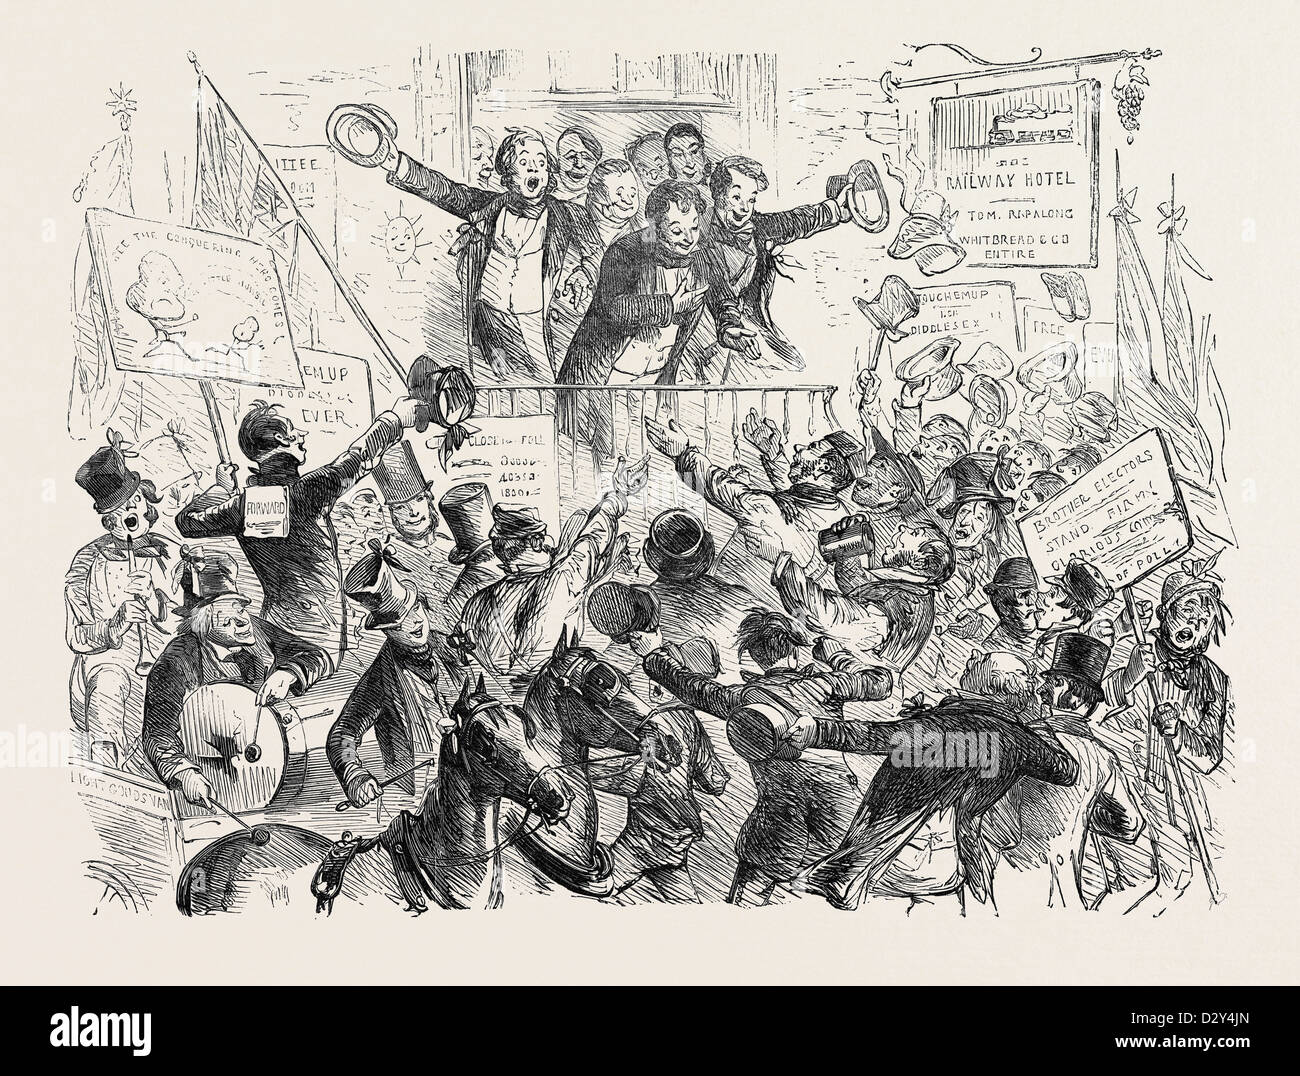 THE SUCCESSFUL CANDIDATE, DRAWN BY PHIZ, 1852 - Stock Image